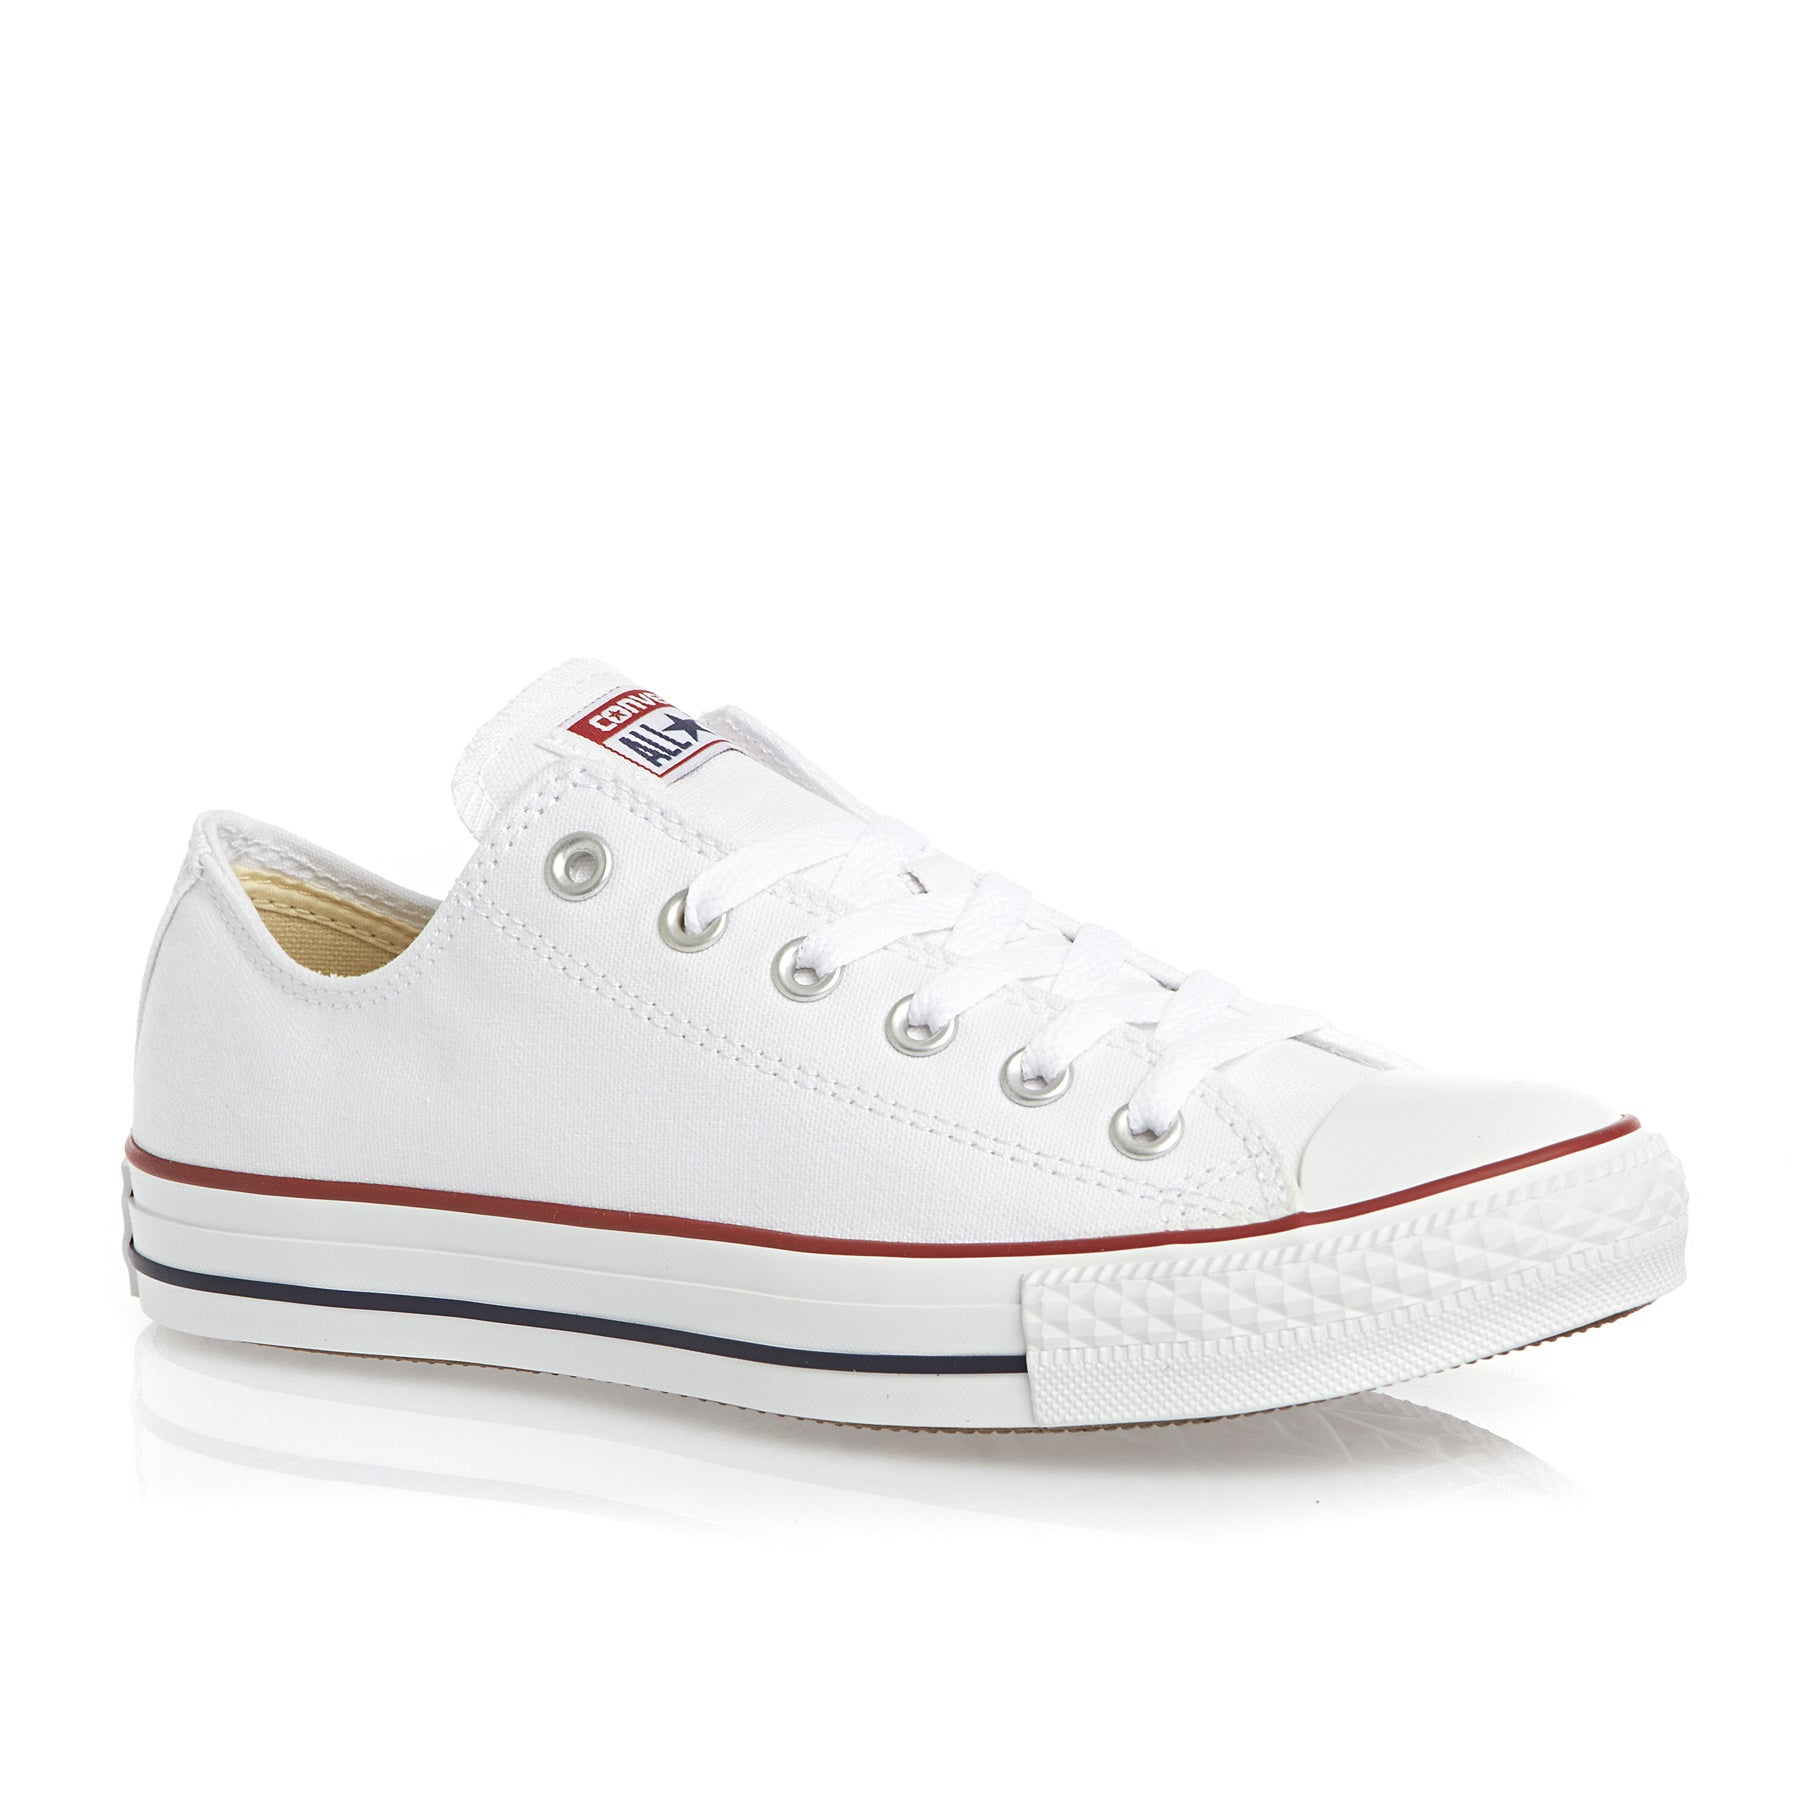 Converse Chuck Taylor All Stars OX Shoes - Optical White